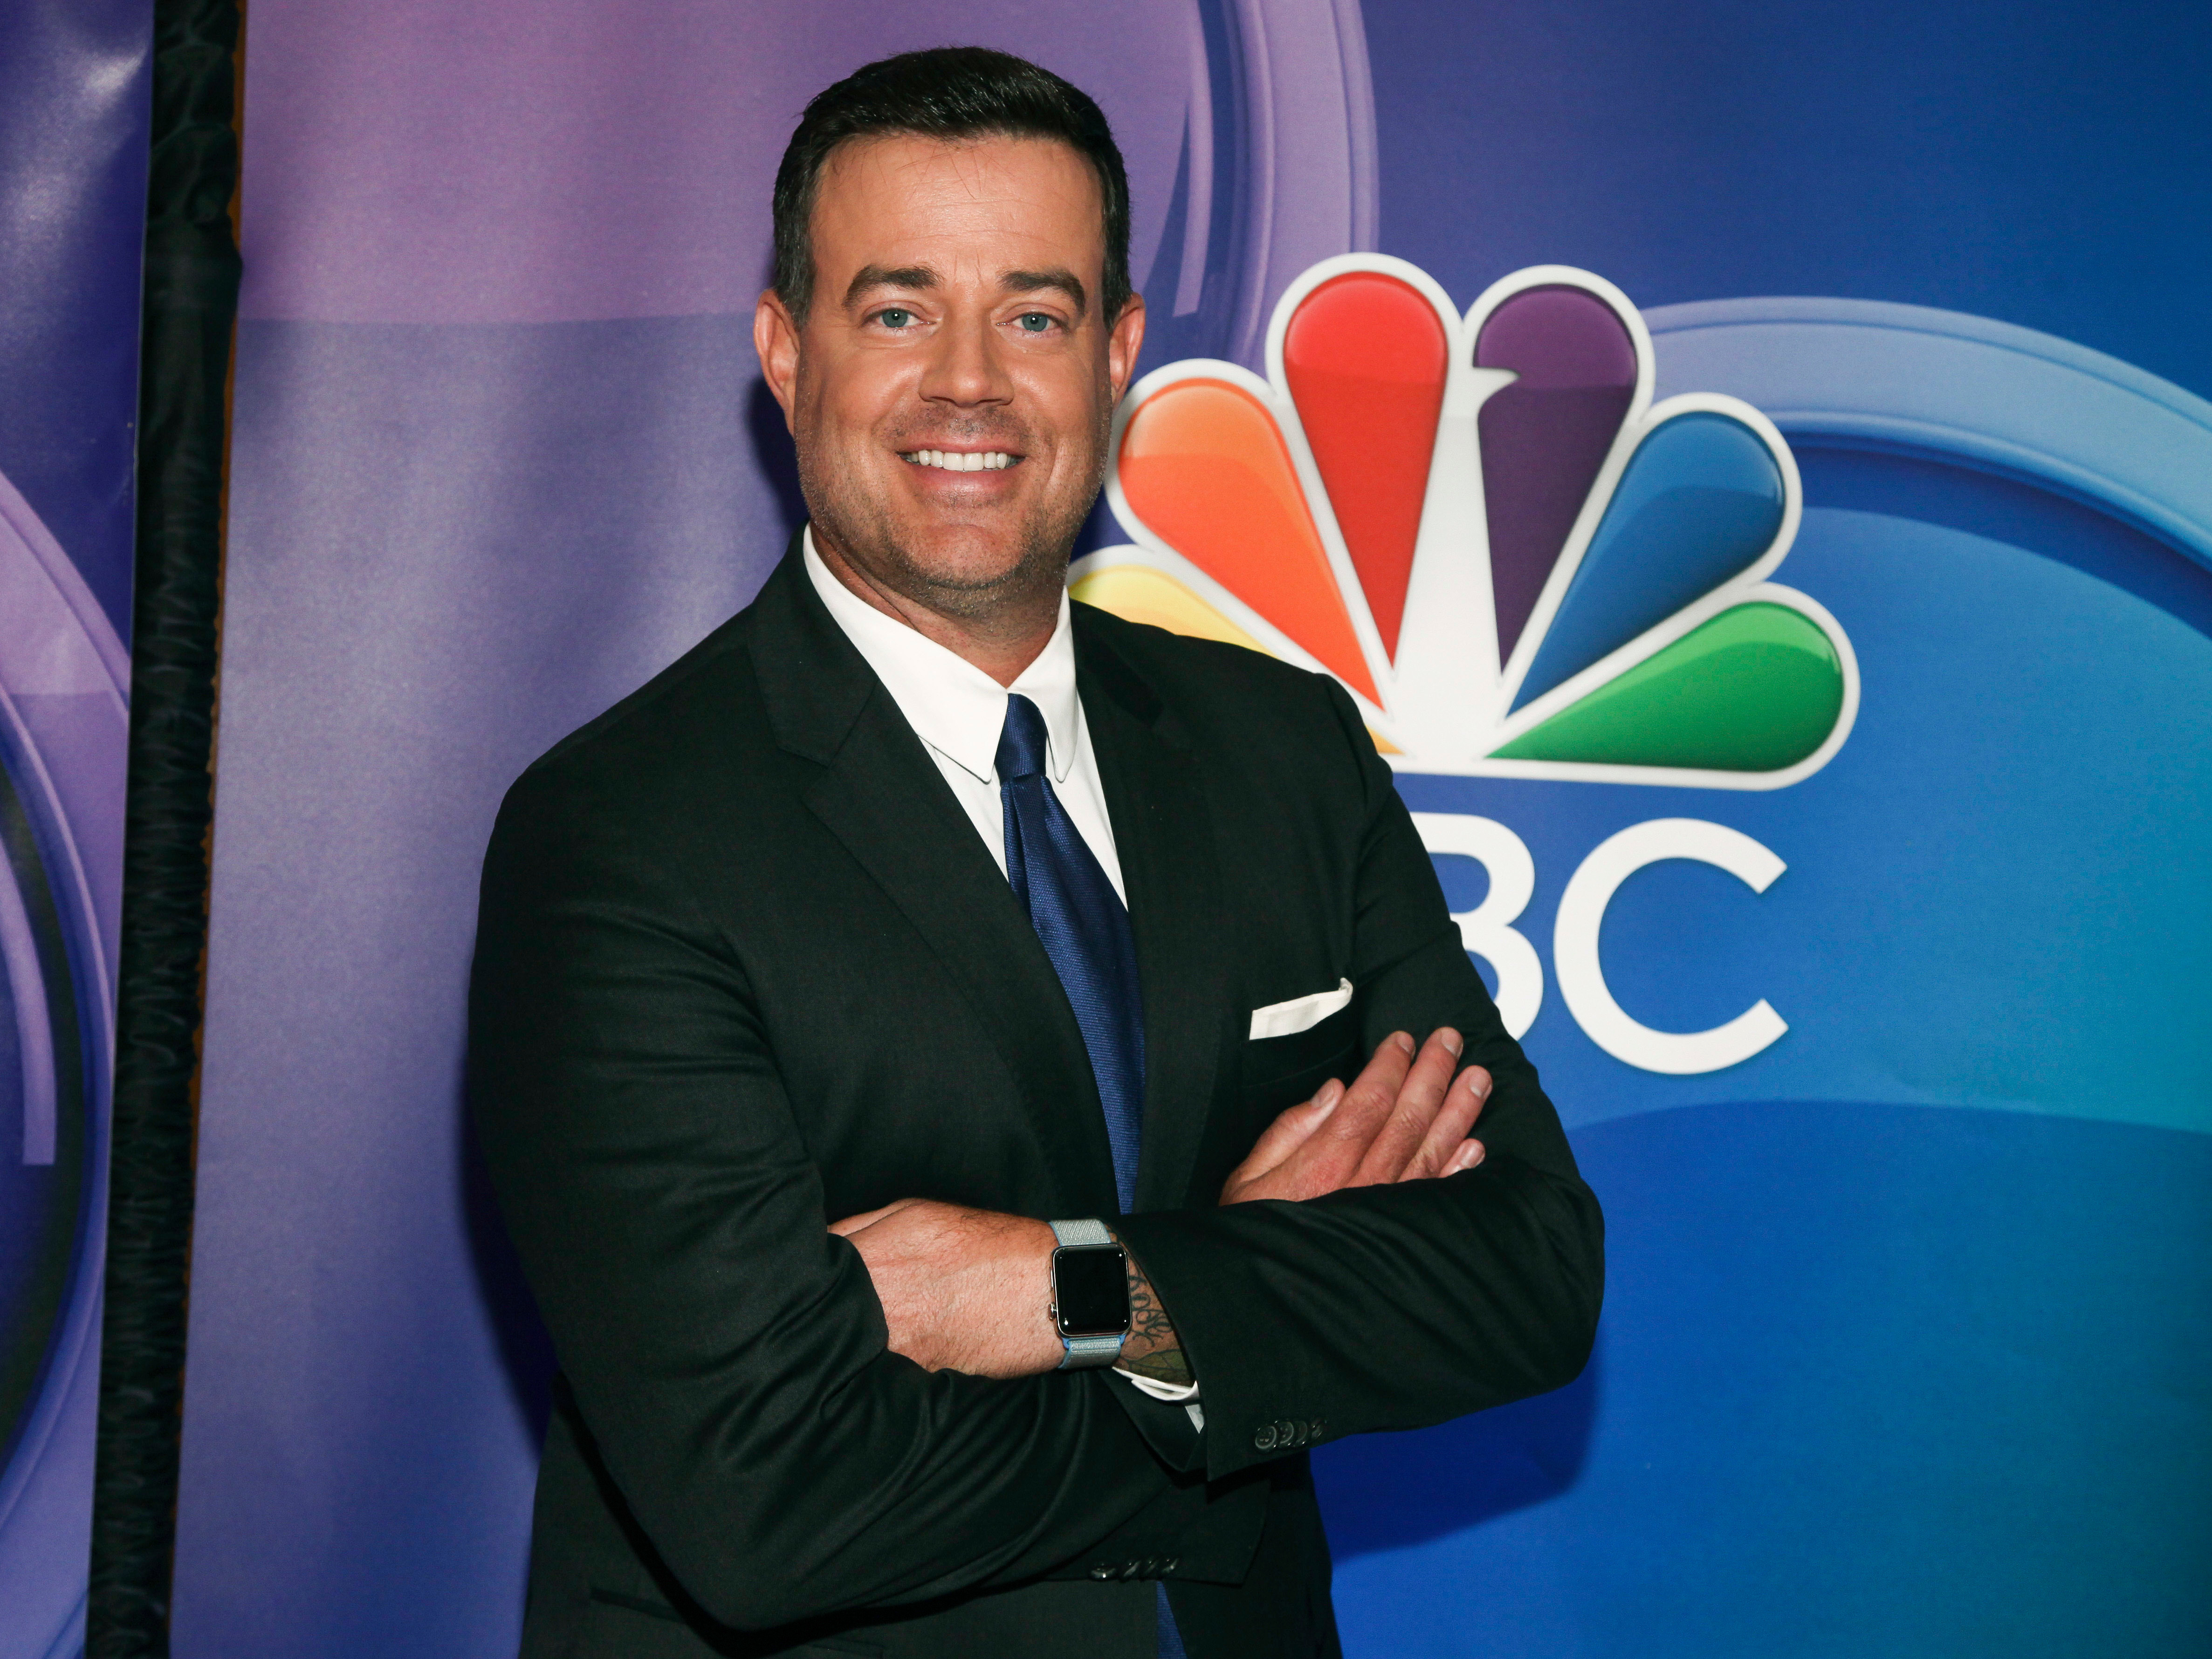 Carson Daly attends NBC's Fall 2018 press junket in New York City on Sept. 6, 2018.